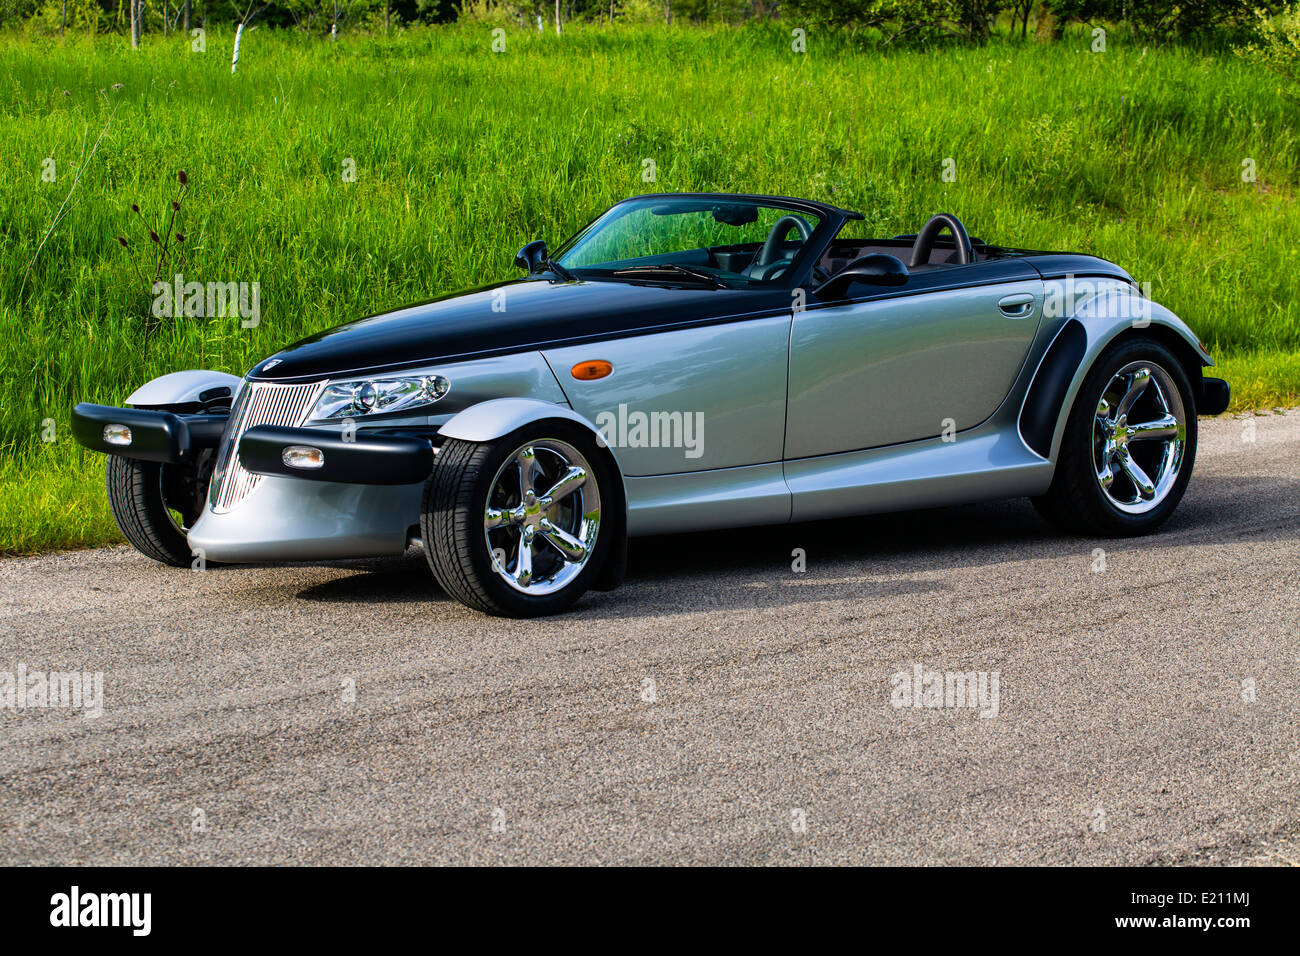 2001 plymouth prowler black tie edition on pavement stock image